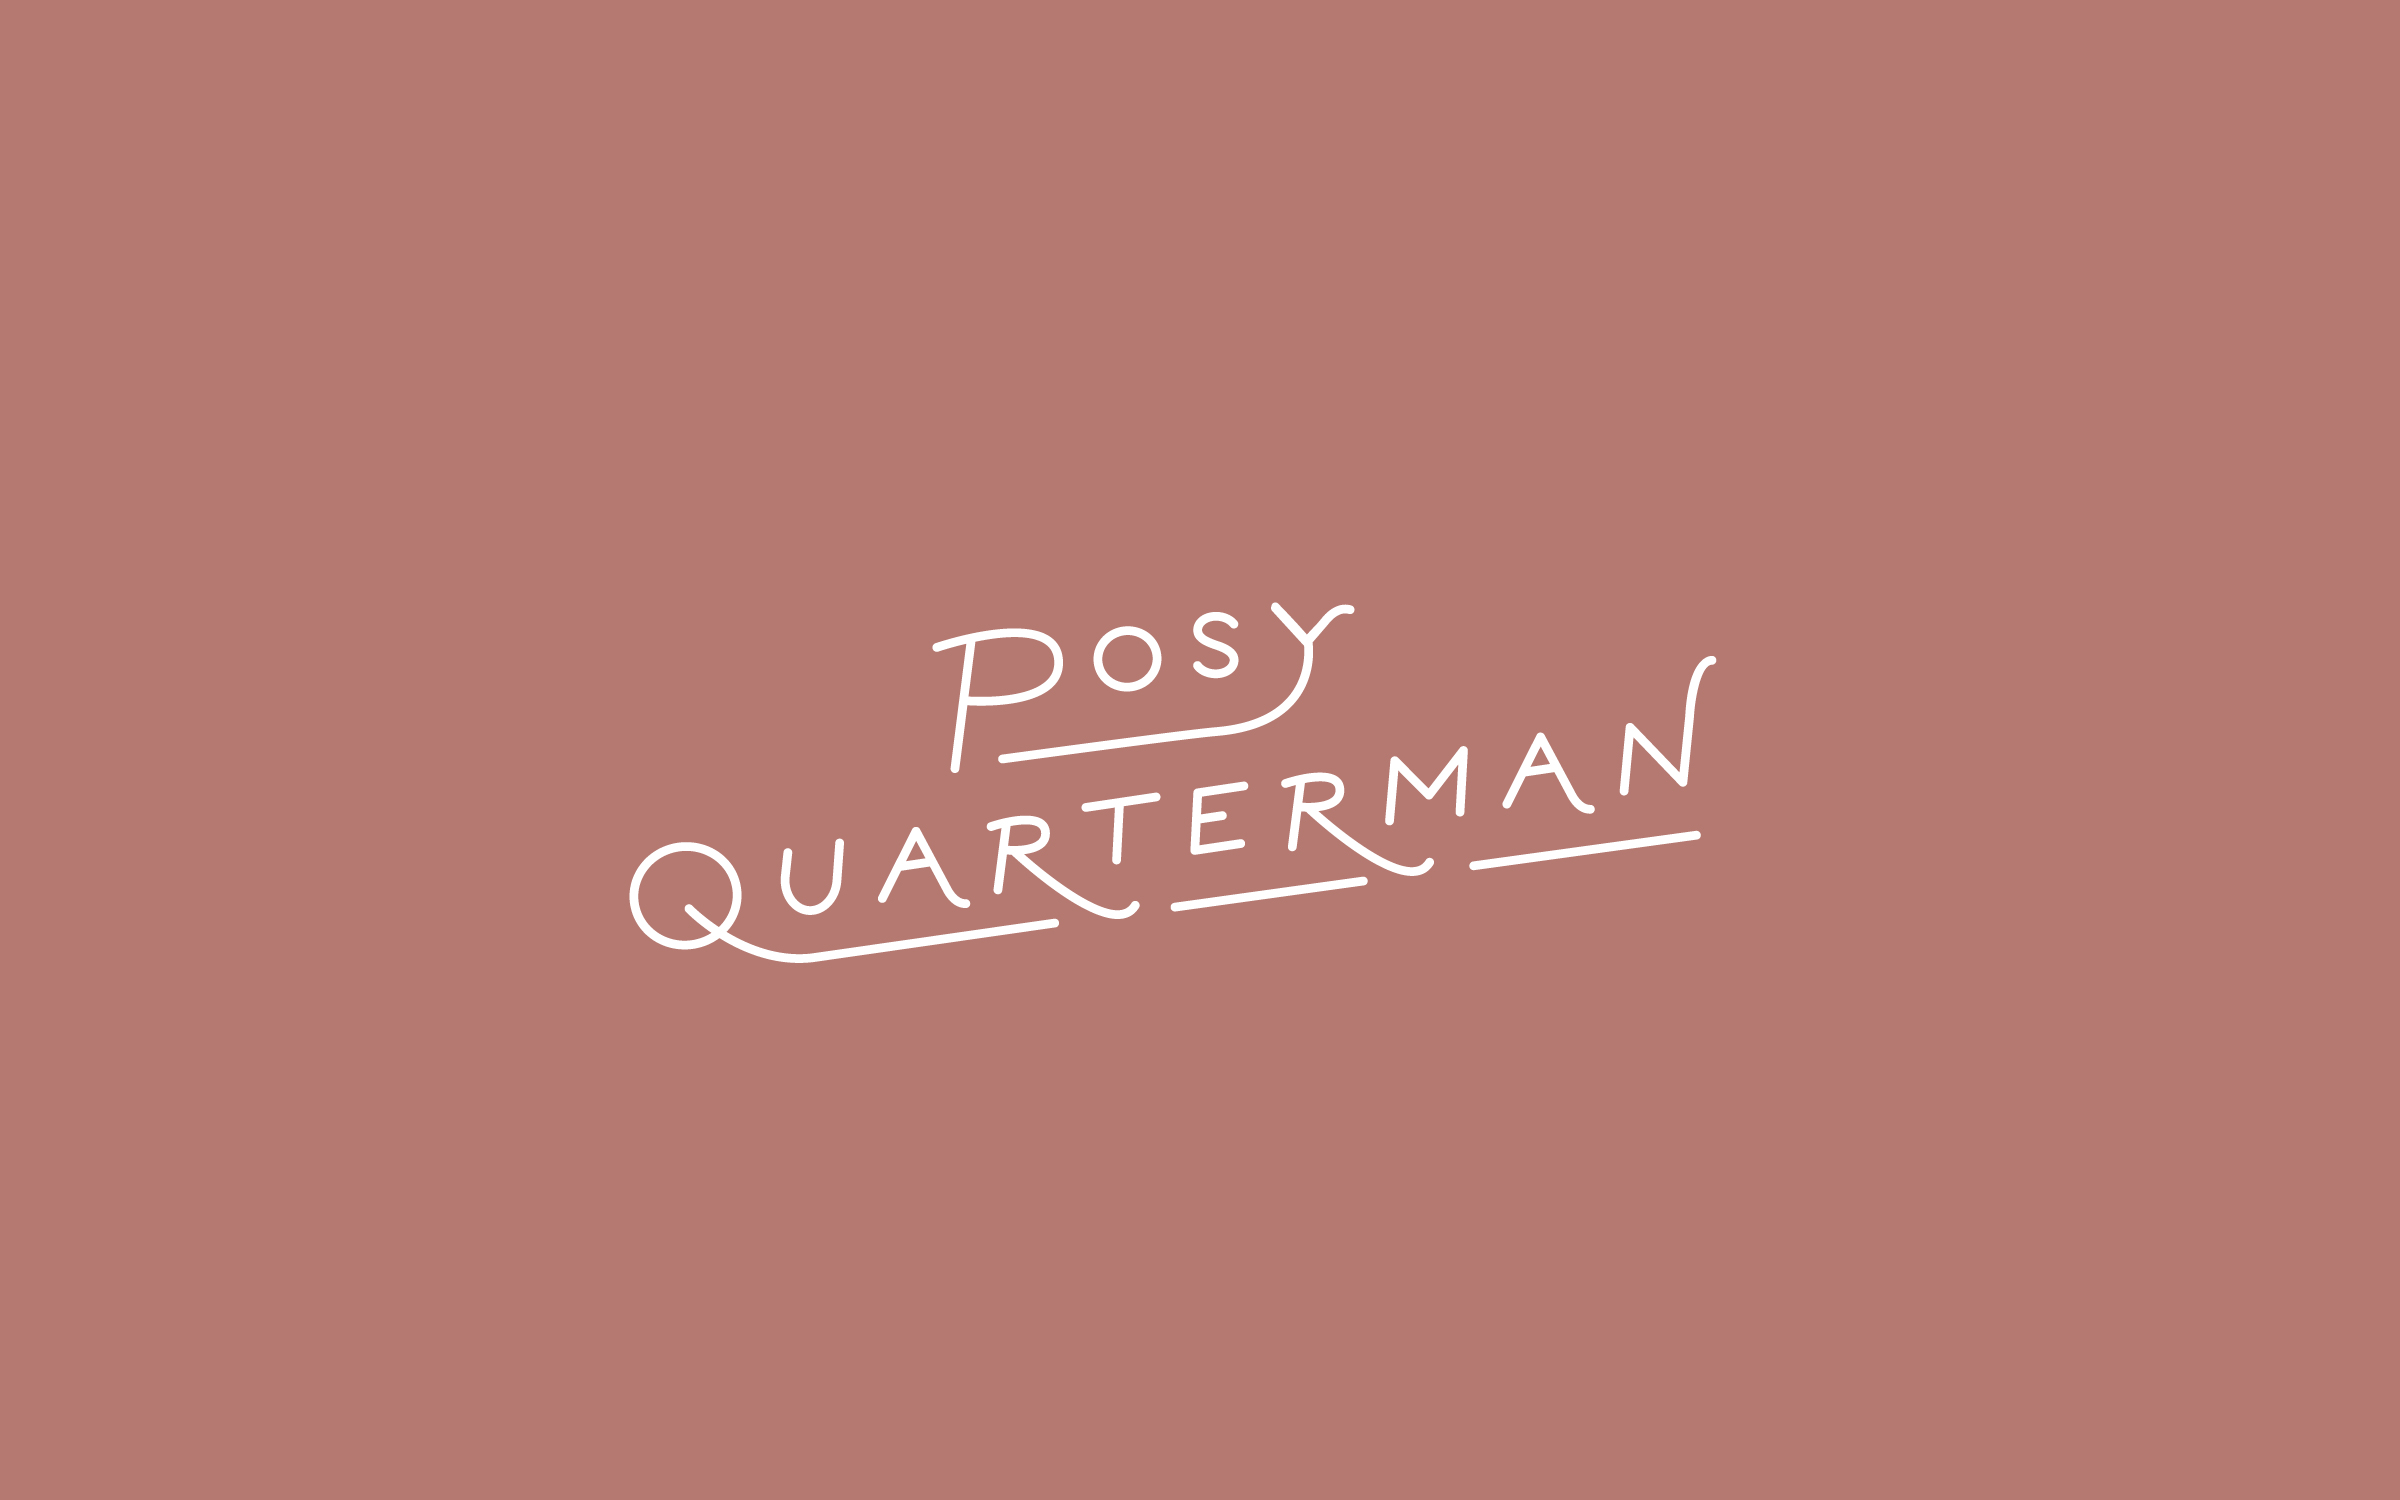 Posy+Quarterman-14.jpg